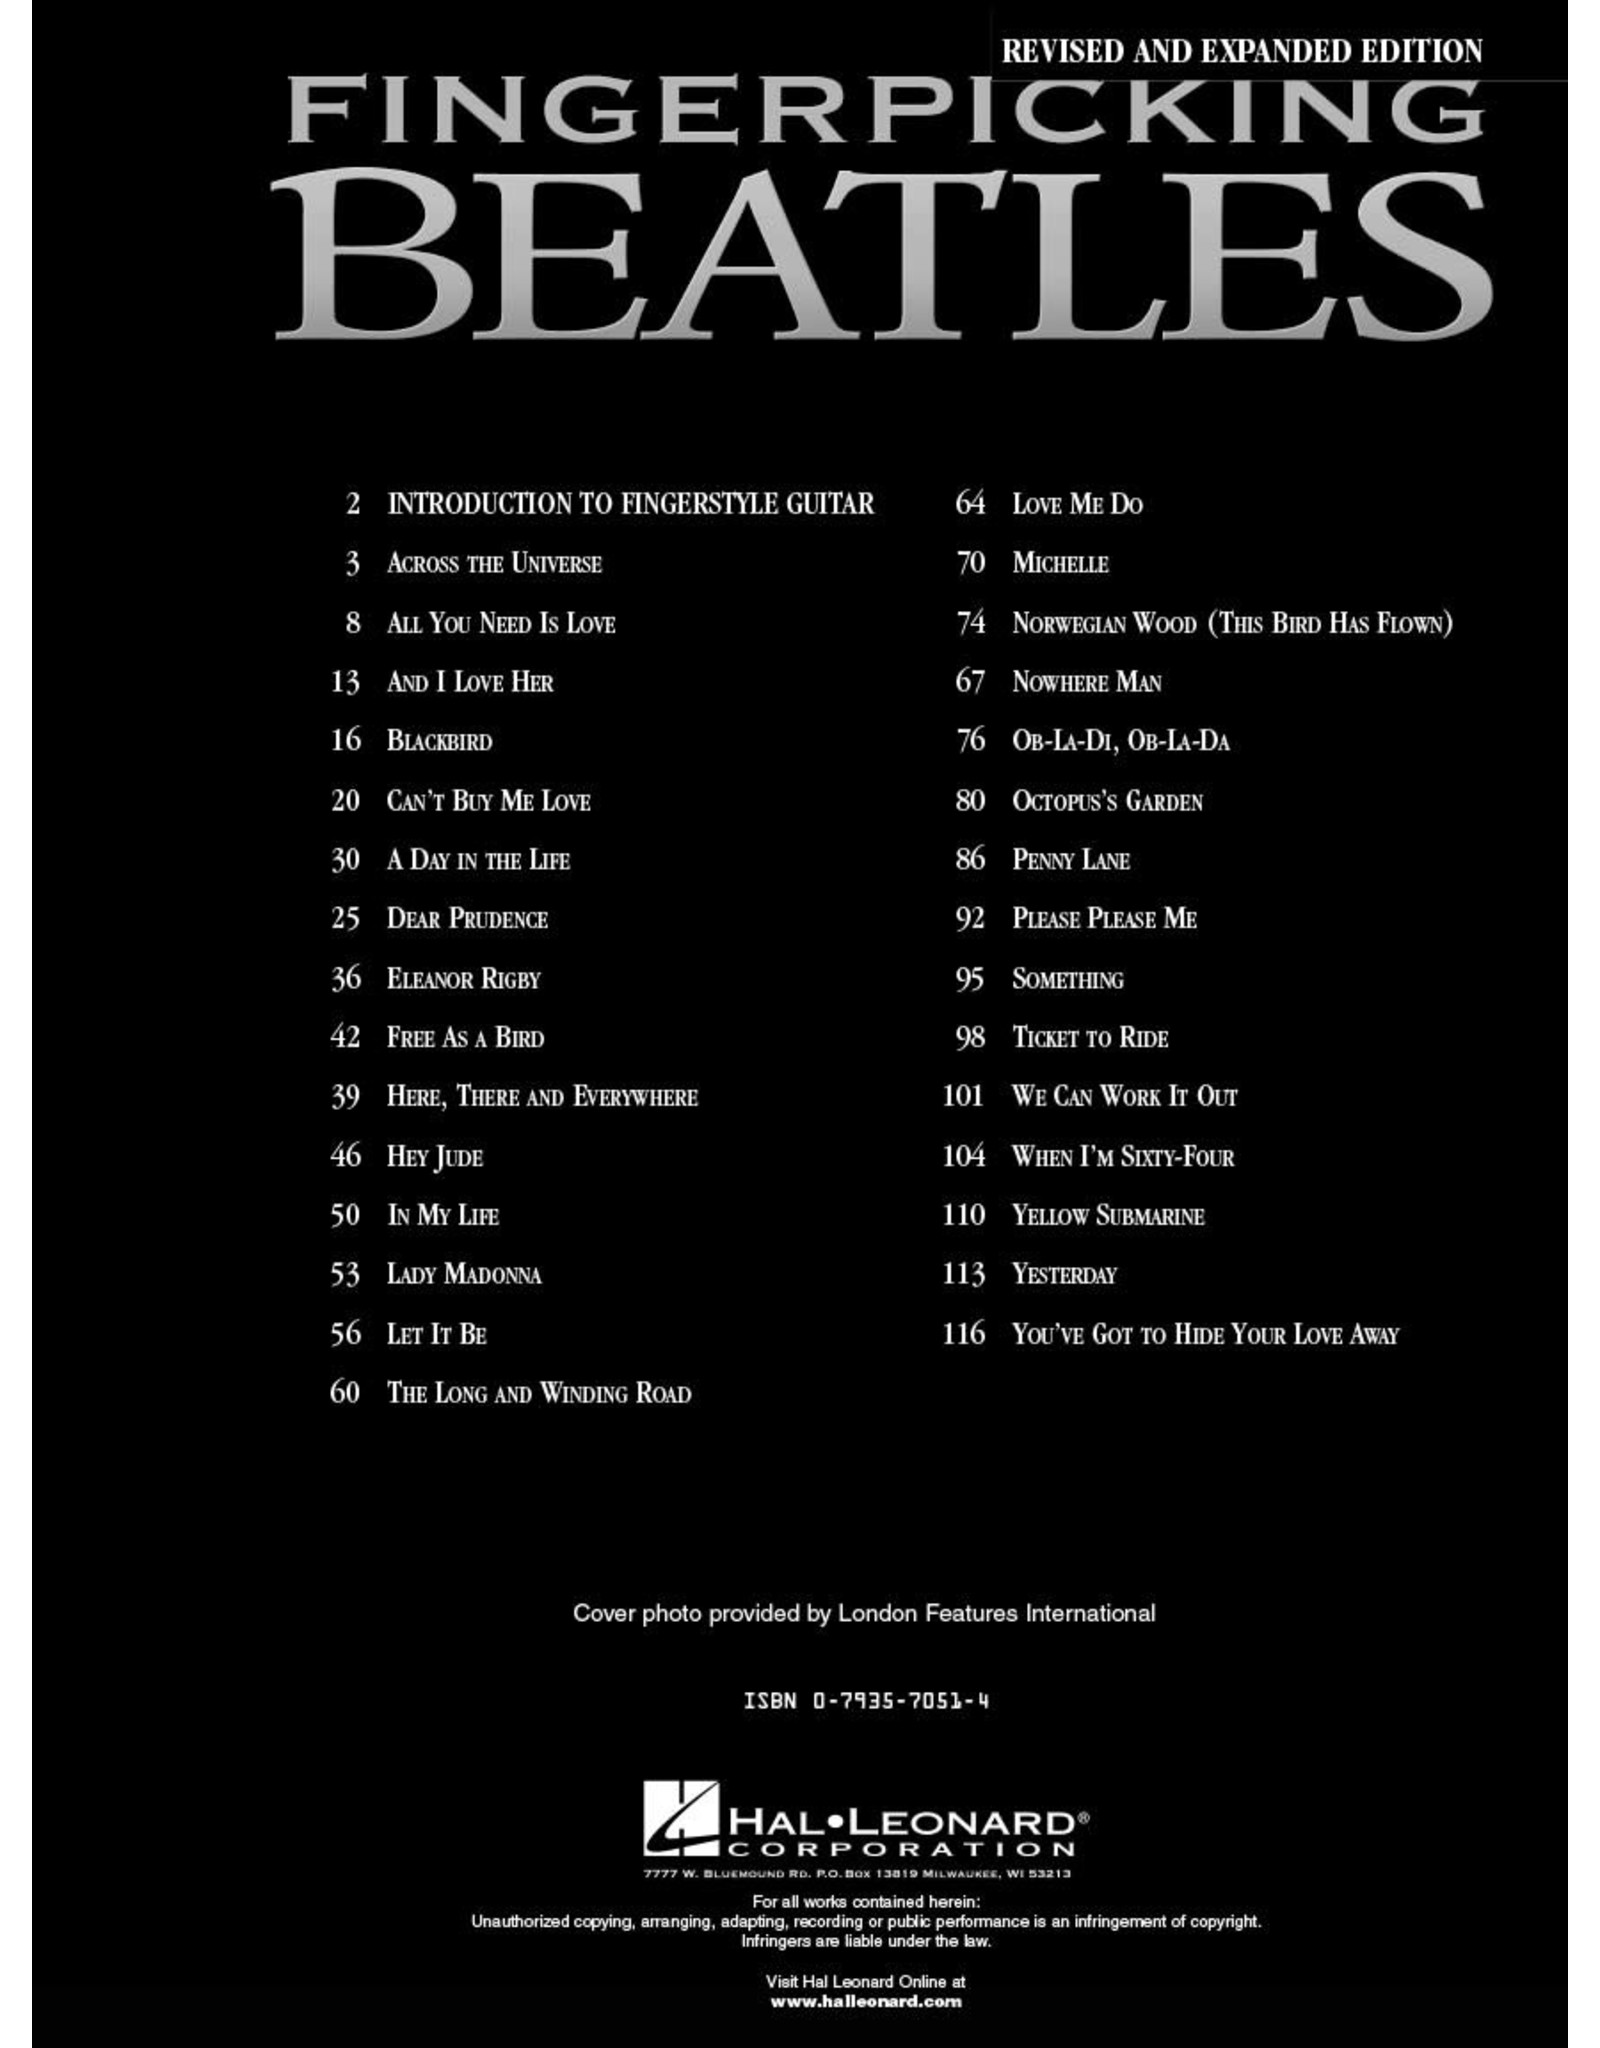 Hal Leonard Fingerpicking Beatles - 30 Songs arranged for Solo Guitar in Standard Notation and Tablature